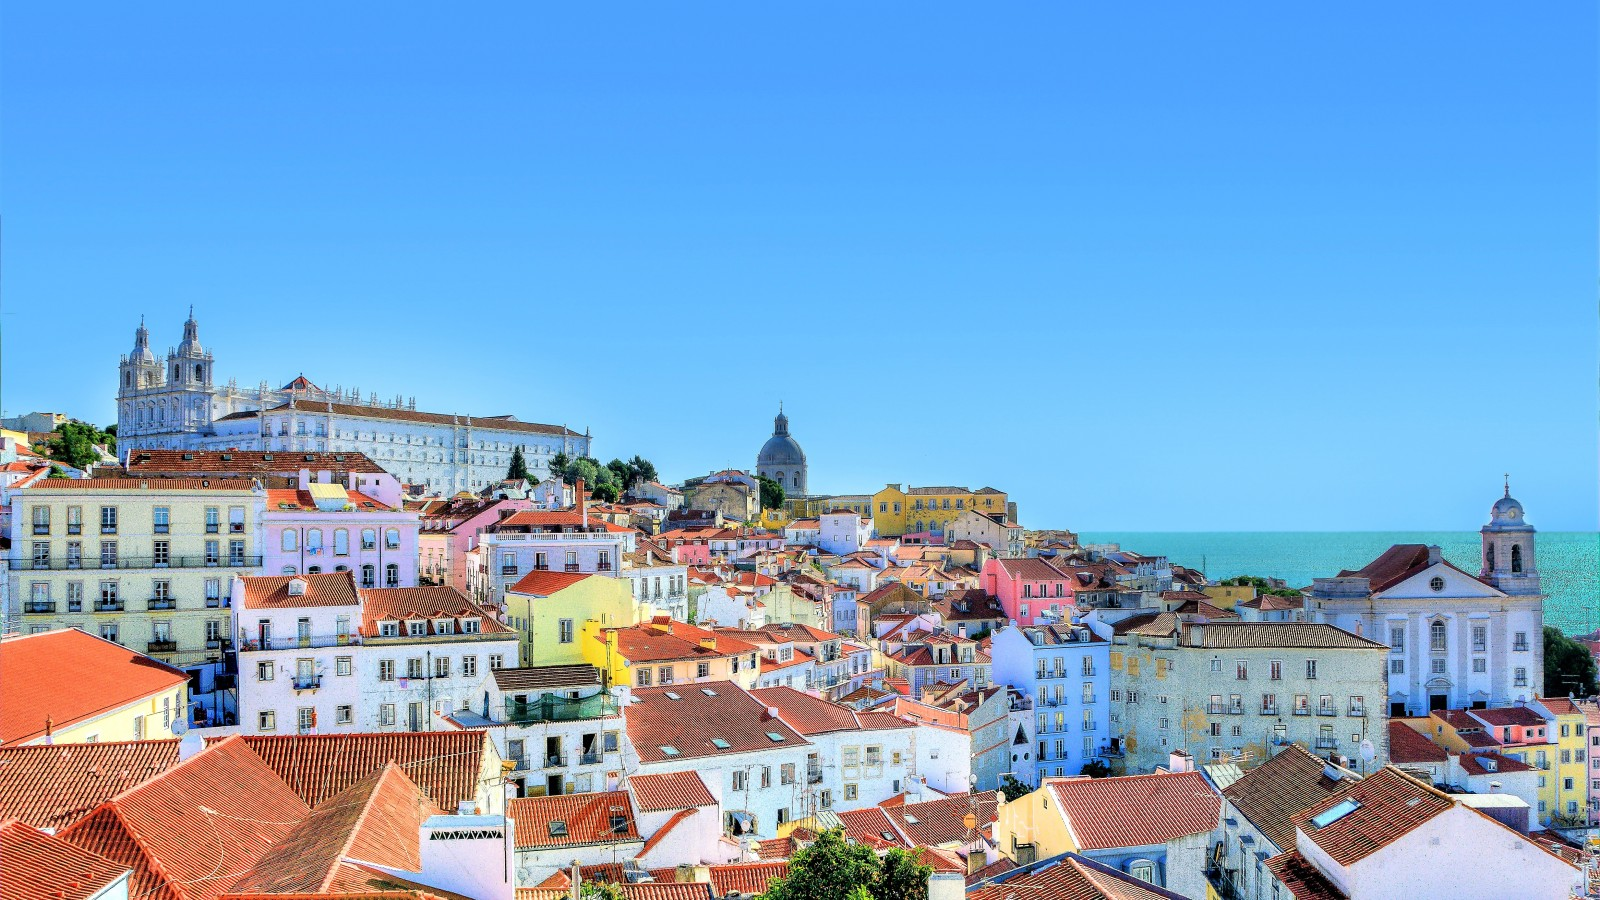 The colourful Alfama neighbourhood in Lisbon